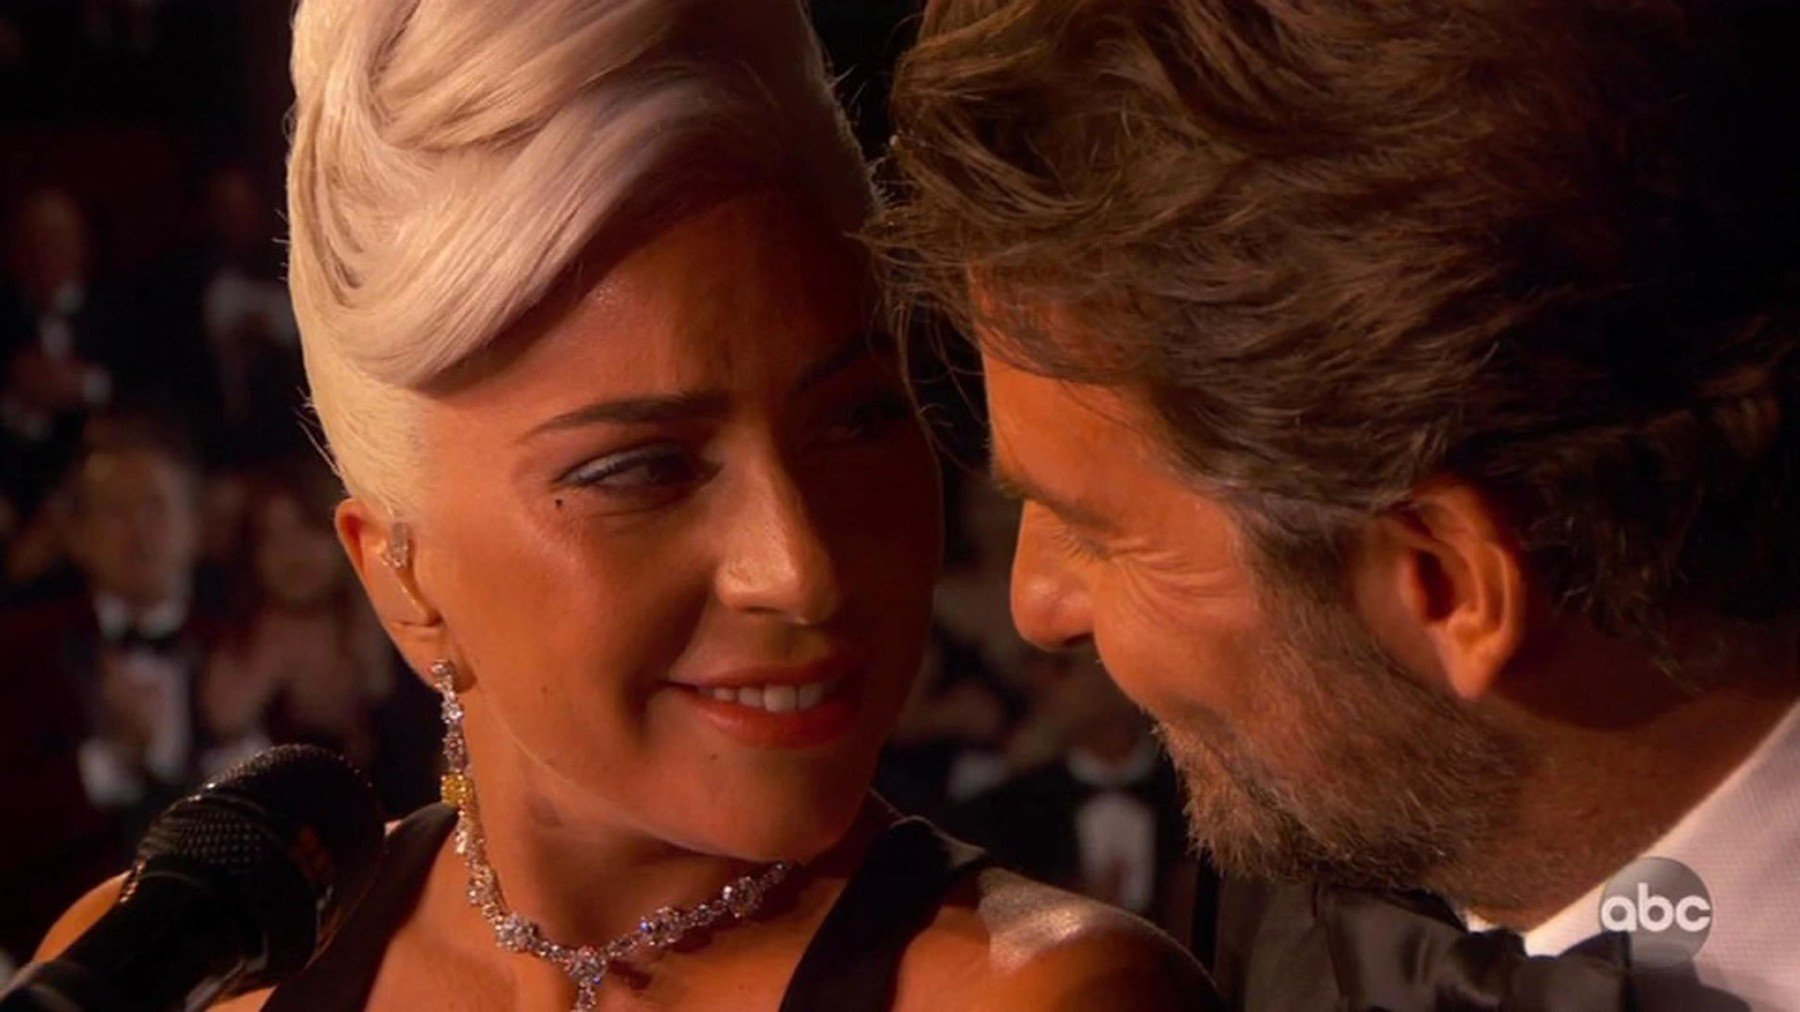 BGUK_1498052 - ** RIGHTS: WORLDWIDE EXCEPT IN UNITED STATES ** Los Angeles, CA  - Lady Gaga and Bradley Cooper perform emotional version of Shallow at the Oscars. Lady Gaga and Bradley Cooper dove into their first televised performance of Shallow at the 91st Academy Awards. The duo - both nominated as lead actors for their work in A Star Is Born - began the performance from their front-row seats in the audience, with Cooper (also the film's director) leading Gaga to the Dolby Theatre stage by the hand. They then launched into an emotional rendition of the film's signature hit, staring into each other's eyes from across a brown piano for most of the song until Cooper joined Gaga atop the piano bench for an intensely charged embrace to close out the number. A nine-time Grammy winner, Gaga additionally received the second and third Oscar nominations of her career for her contributions to A Star Is Born: one for Best Actress and the other for co-writing Shallow with Mark Ronson, Miike Snow's Andrew Wyatt, and Anthony Rossomando.  *BACKGRID DOES NOT CLAIM ANY COPYRIGHT OR LICENSE IN THE ATTACHED MATERIAL. ANY DOWNLOADING FEES CHARGED BY BACKGRID ARE FOR BACKGRID'S SERVICES ONLY, AND DO NOT, NOR ARE THEY INTENDED TO, CONVEY TO THE USER ANY COPYRIGHT OR LICENSE IN THE MATERIAL. BY PUBLISHING THIS MATERIAL , THE USER EXPRESSLY AGREES TO INDEMNIFY AND TO HOLD BACKGRID HARMLESS FROM ANY CLAIMS, DEMANDS, OR CAUSES OF ACTION ARISING OUT OF OR CONNECTED IN ANY WAY WITH USER'S PUBLICATION OF THE MATERIAL*  Pictured: Lady Gaga, Bradley Cooper  BACKGRID UK 24 FEBRUARY 2019, Image: 415753874, License: Rights-managed, Restrictions: , Model Release: no, Credit line: Profimedia, Backgrid UK